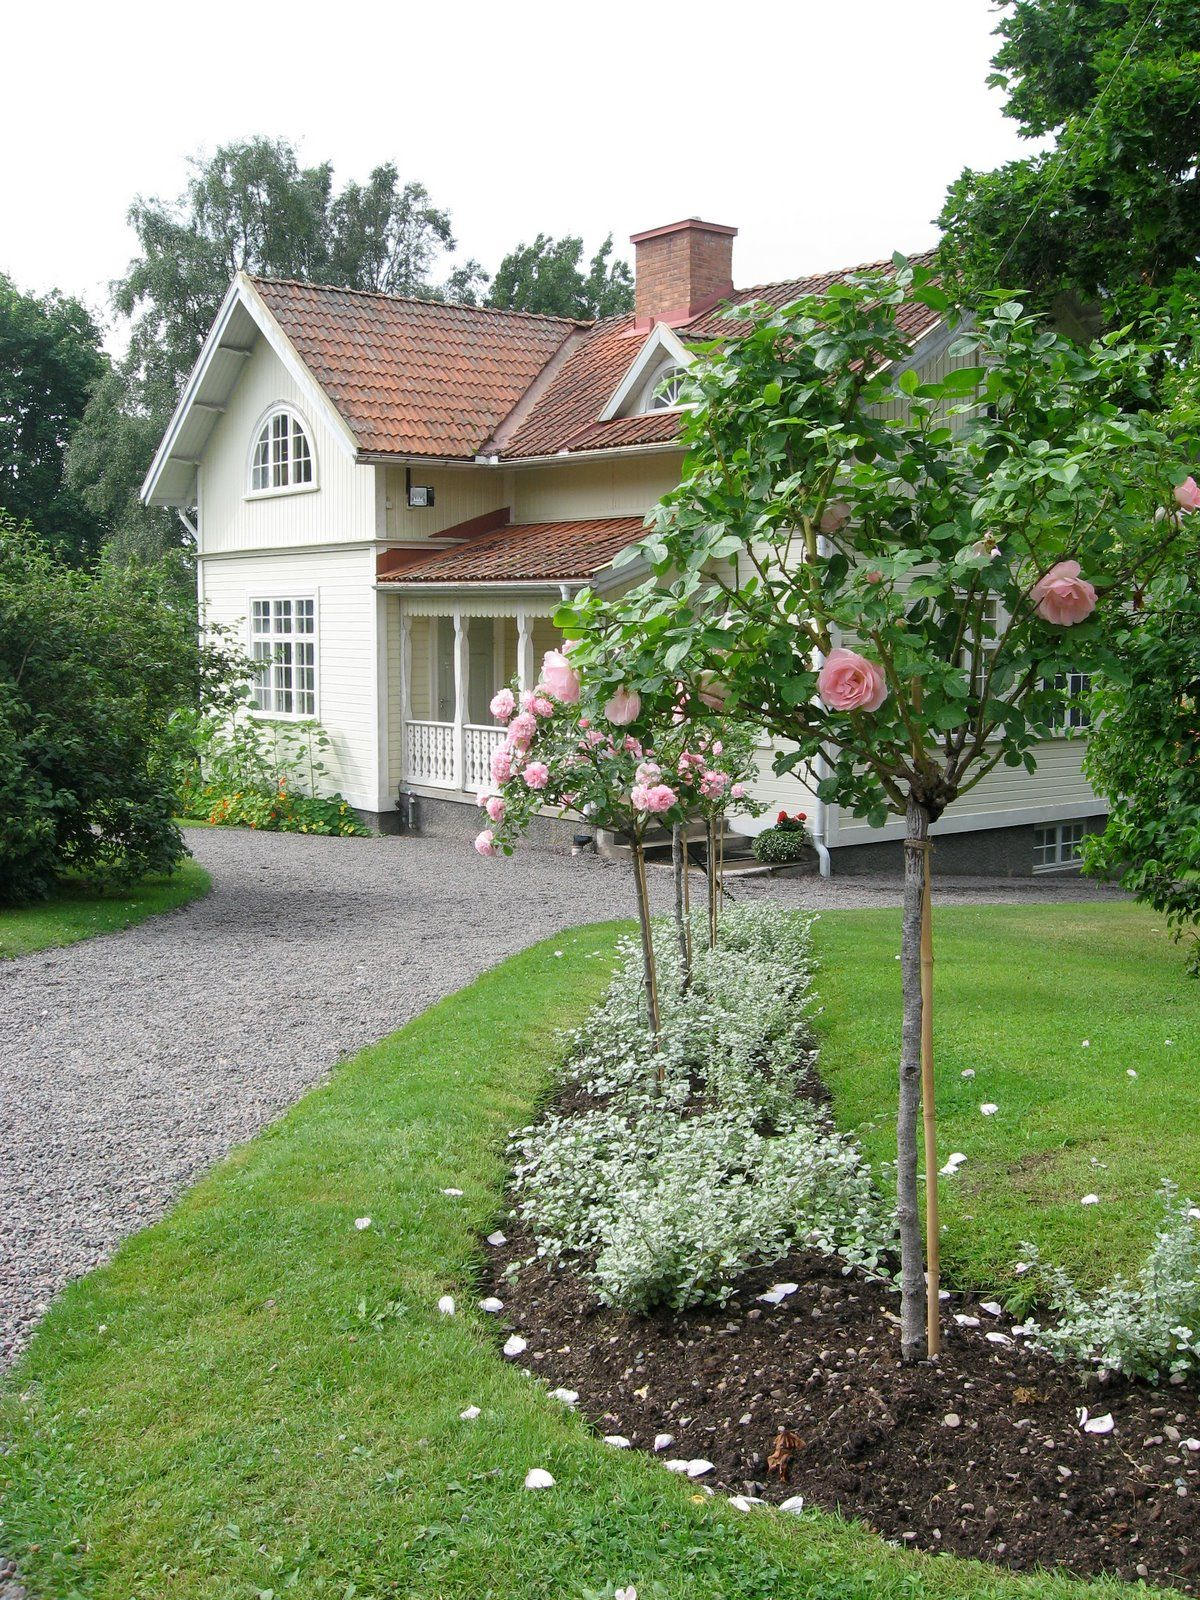 beautiful swedish house and garden why don 39 t more people do red roof tiles why for the. Black Bedroom Furniture Sets. Home Design Ideas